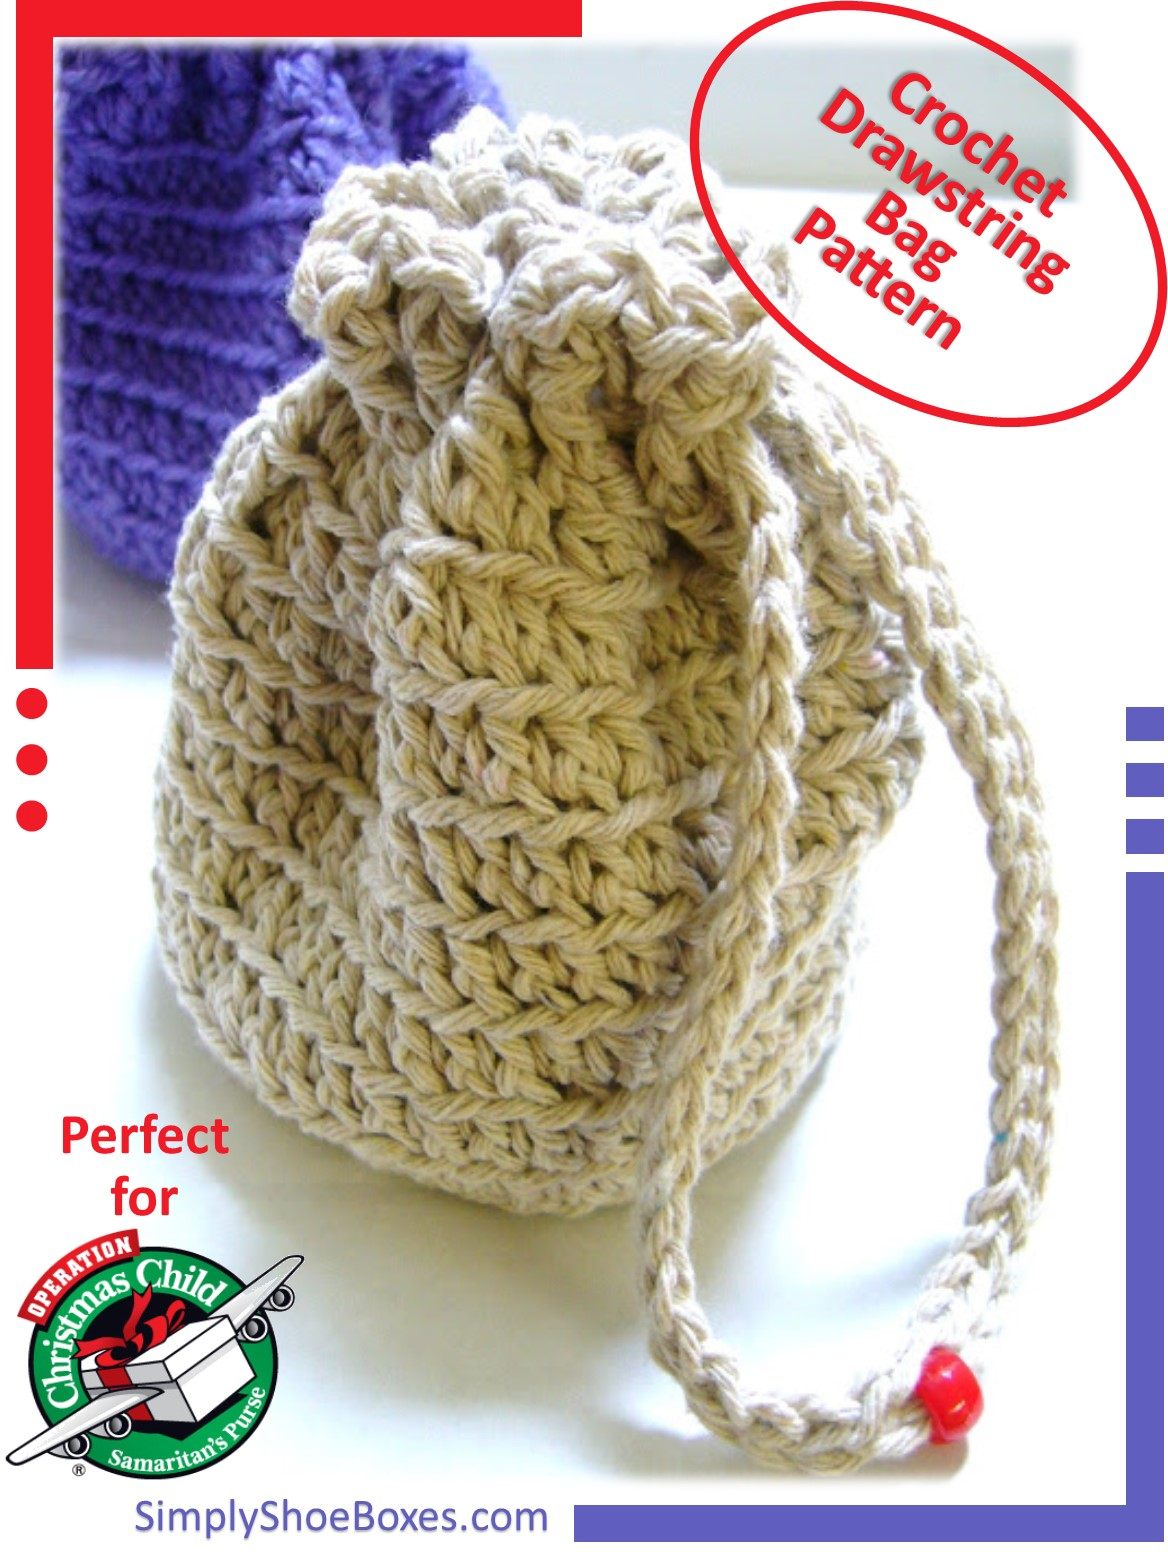 Simply Shoe Boxes Simple Crocheted Stand Up Drawstring